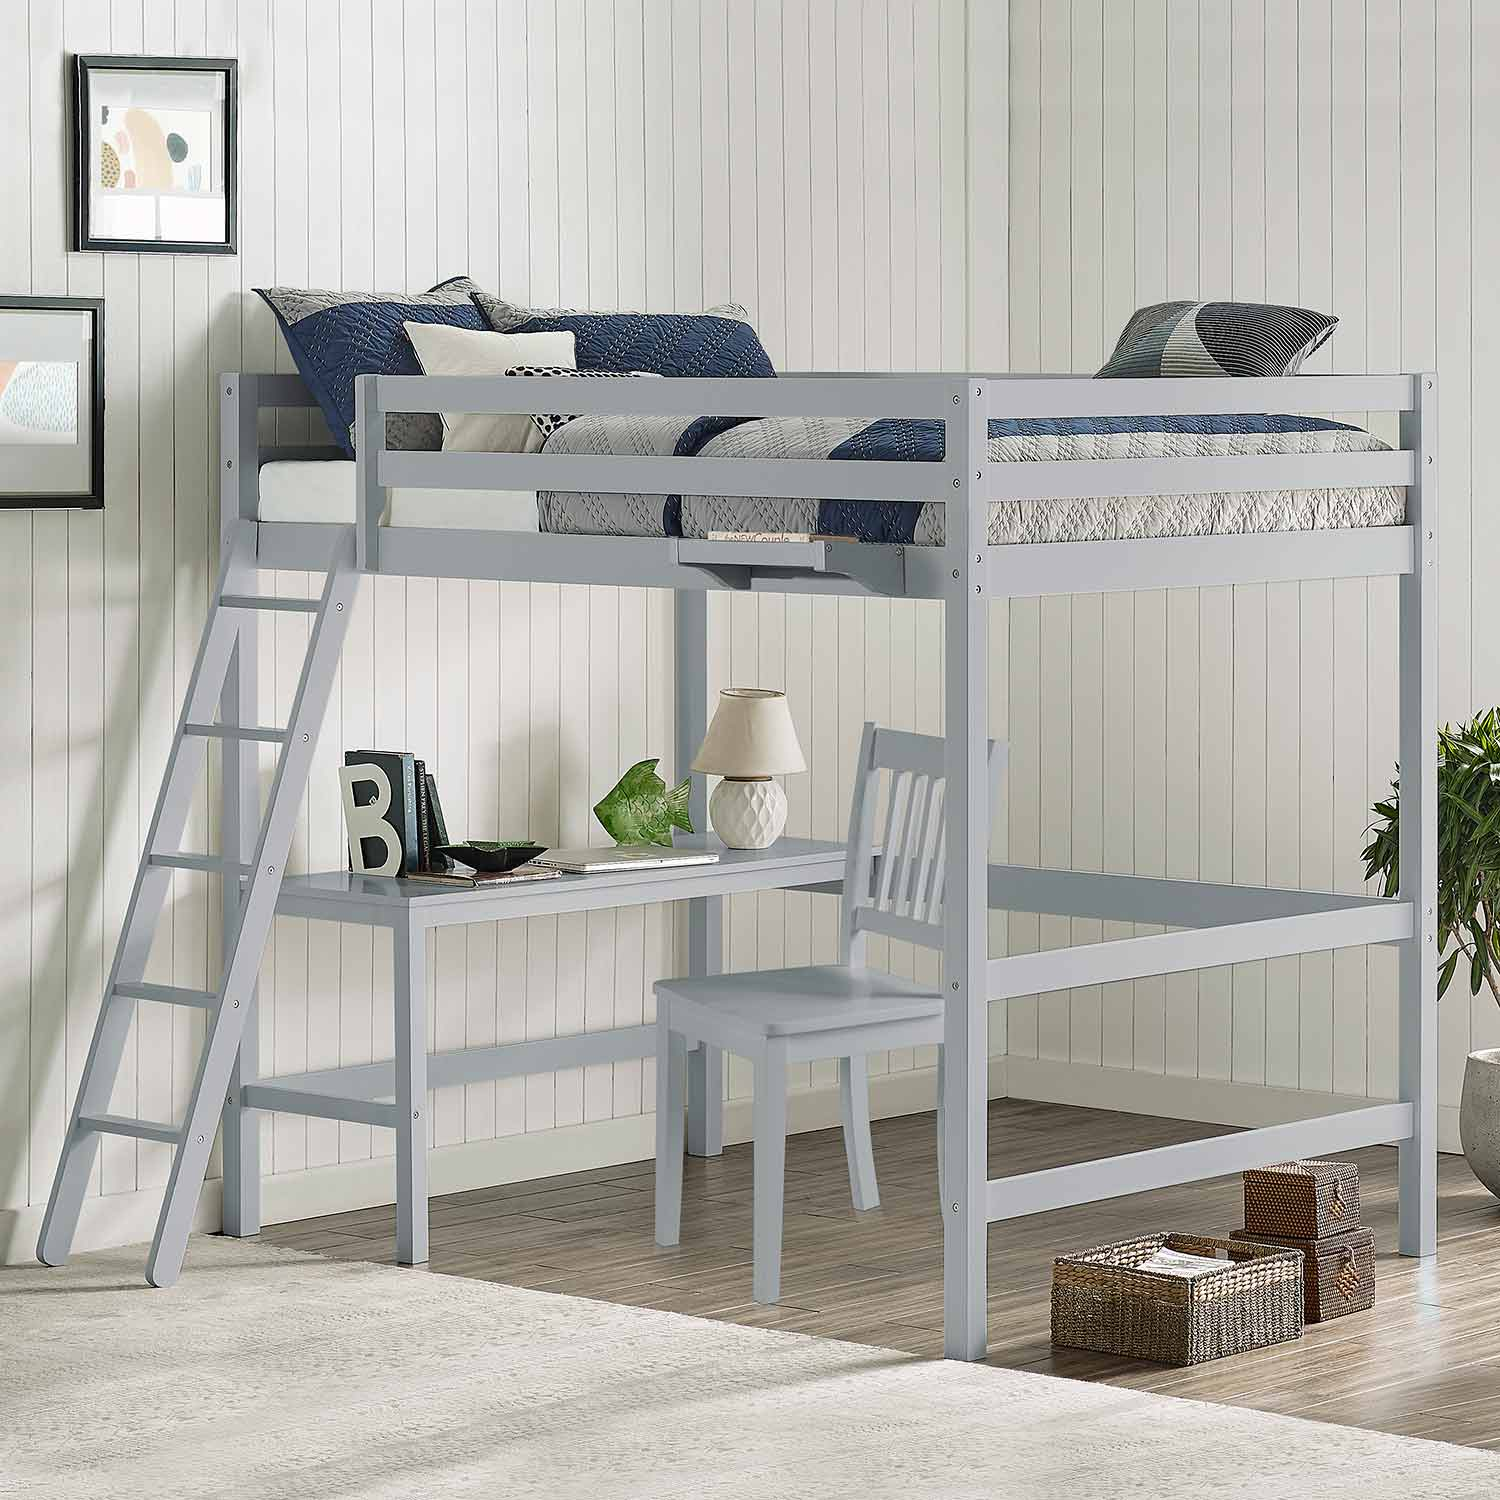 Hillsdale Caspian Full Loft Bed with Chair and Hanging Nightstand - Gray